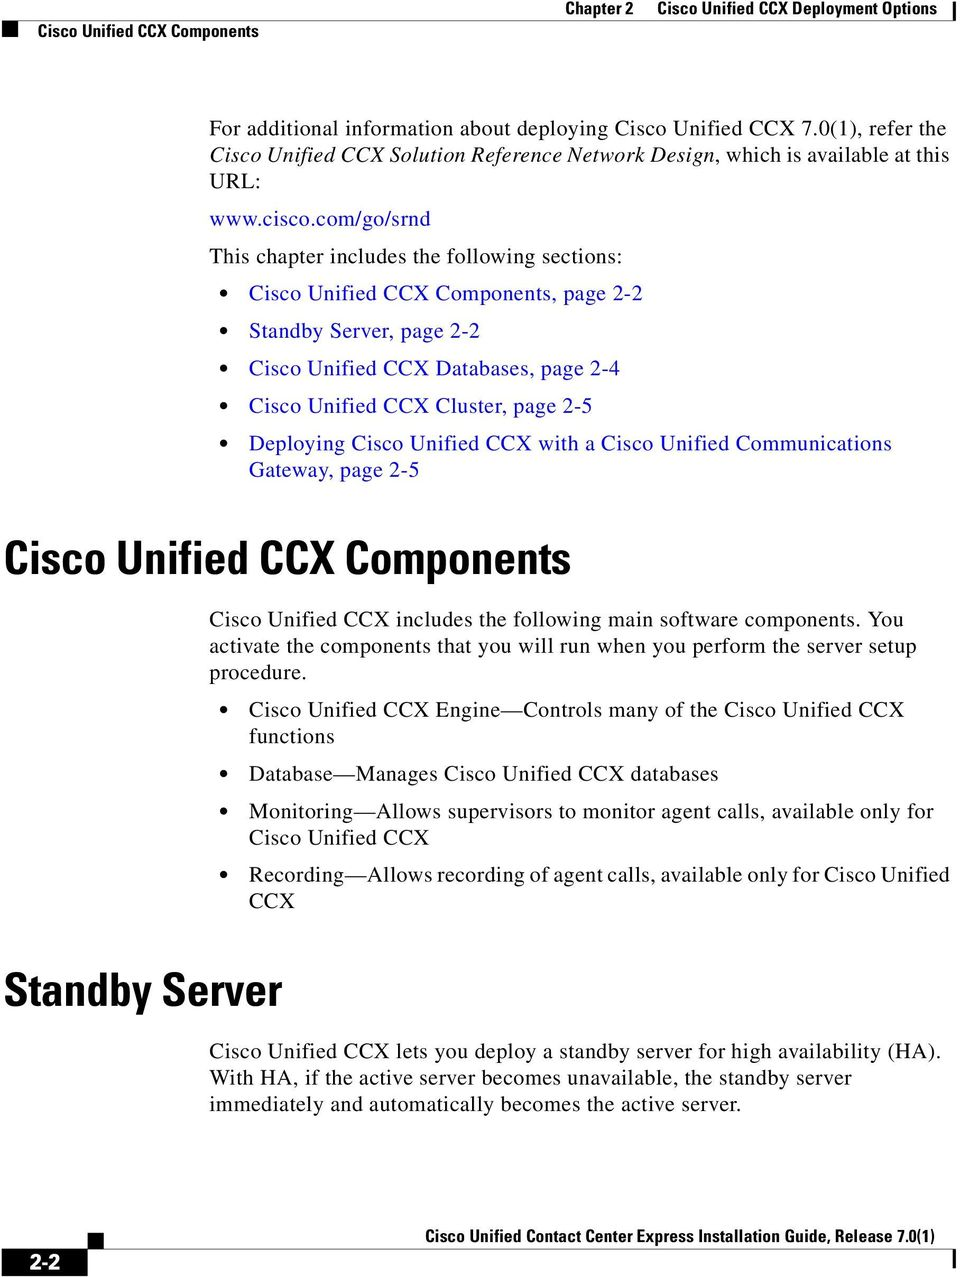 com/go/srnd This chapter includes the following sections: Cisco Unified CCX Components, page 2-2 Standby Server, page 2-2 Cisco Unified CCX Databases, page 2-4 Cisco Unified CCX Cluster, page 2-5